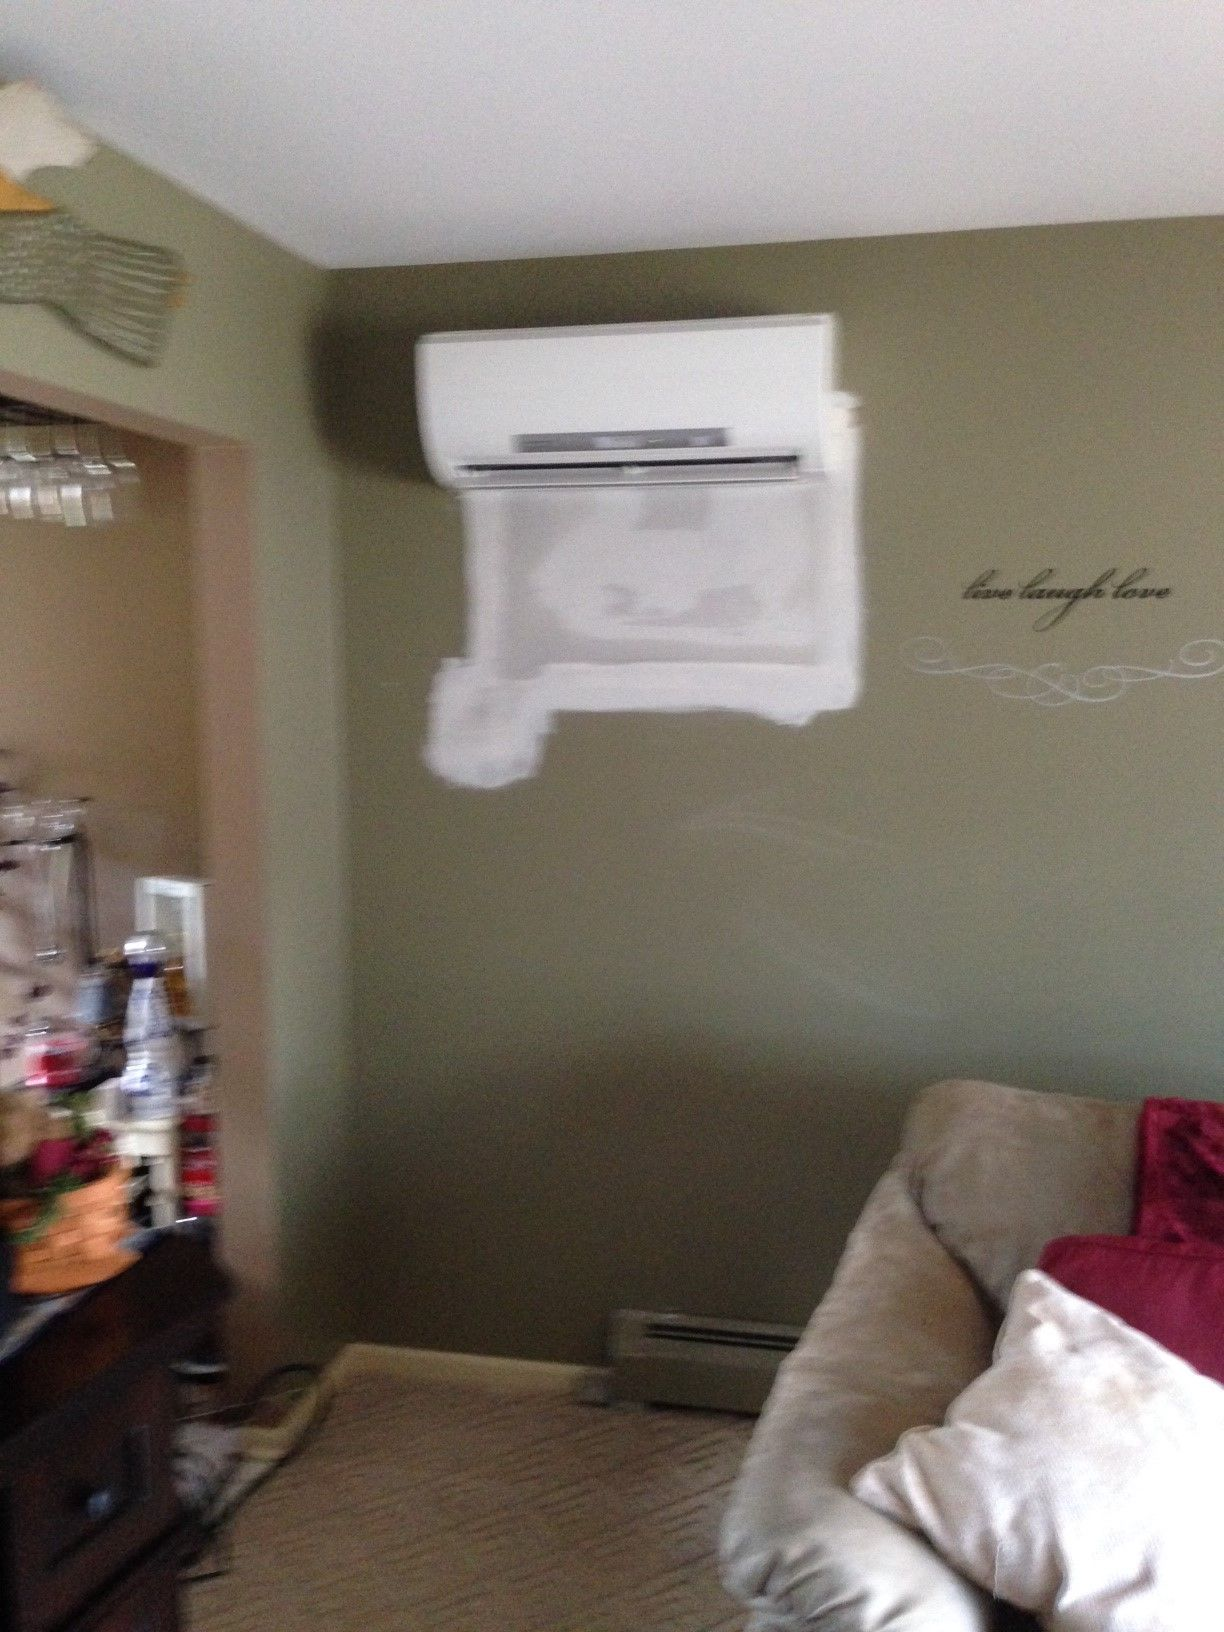 goodbye wall air conditioner. hello mitsubishi ductless heat pump